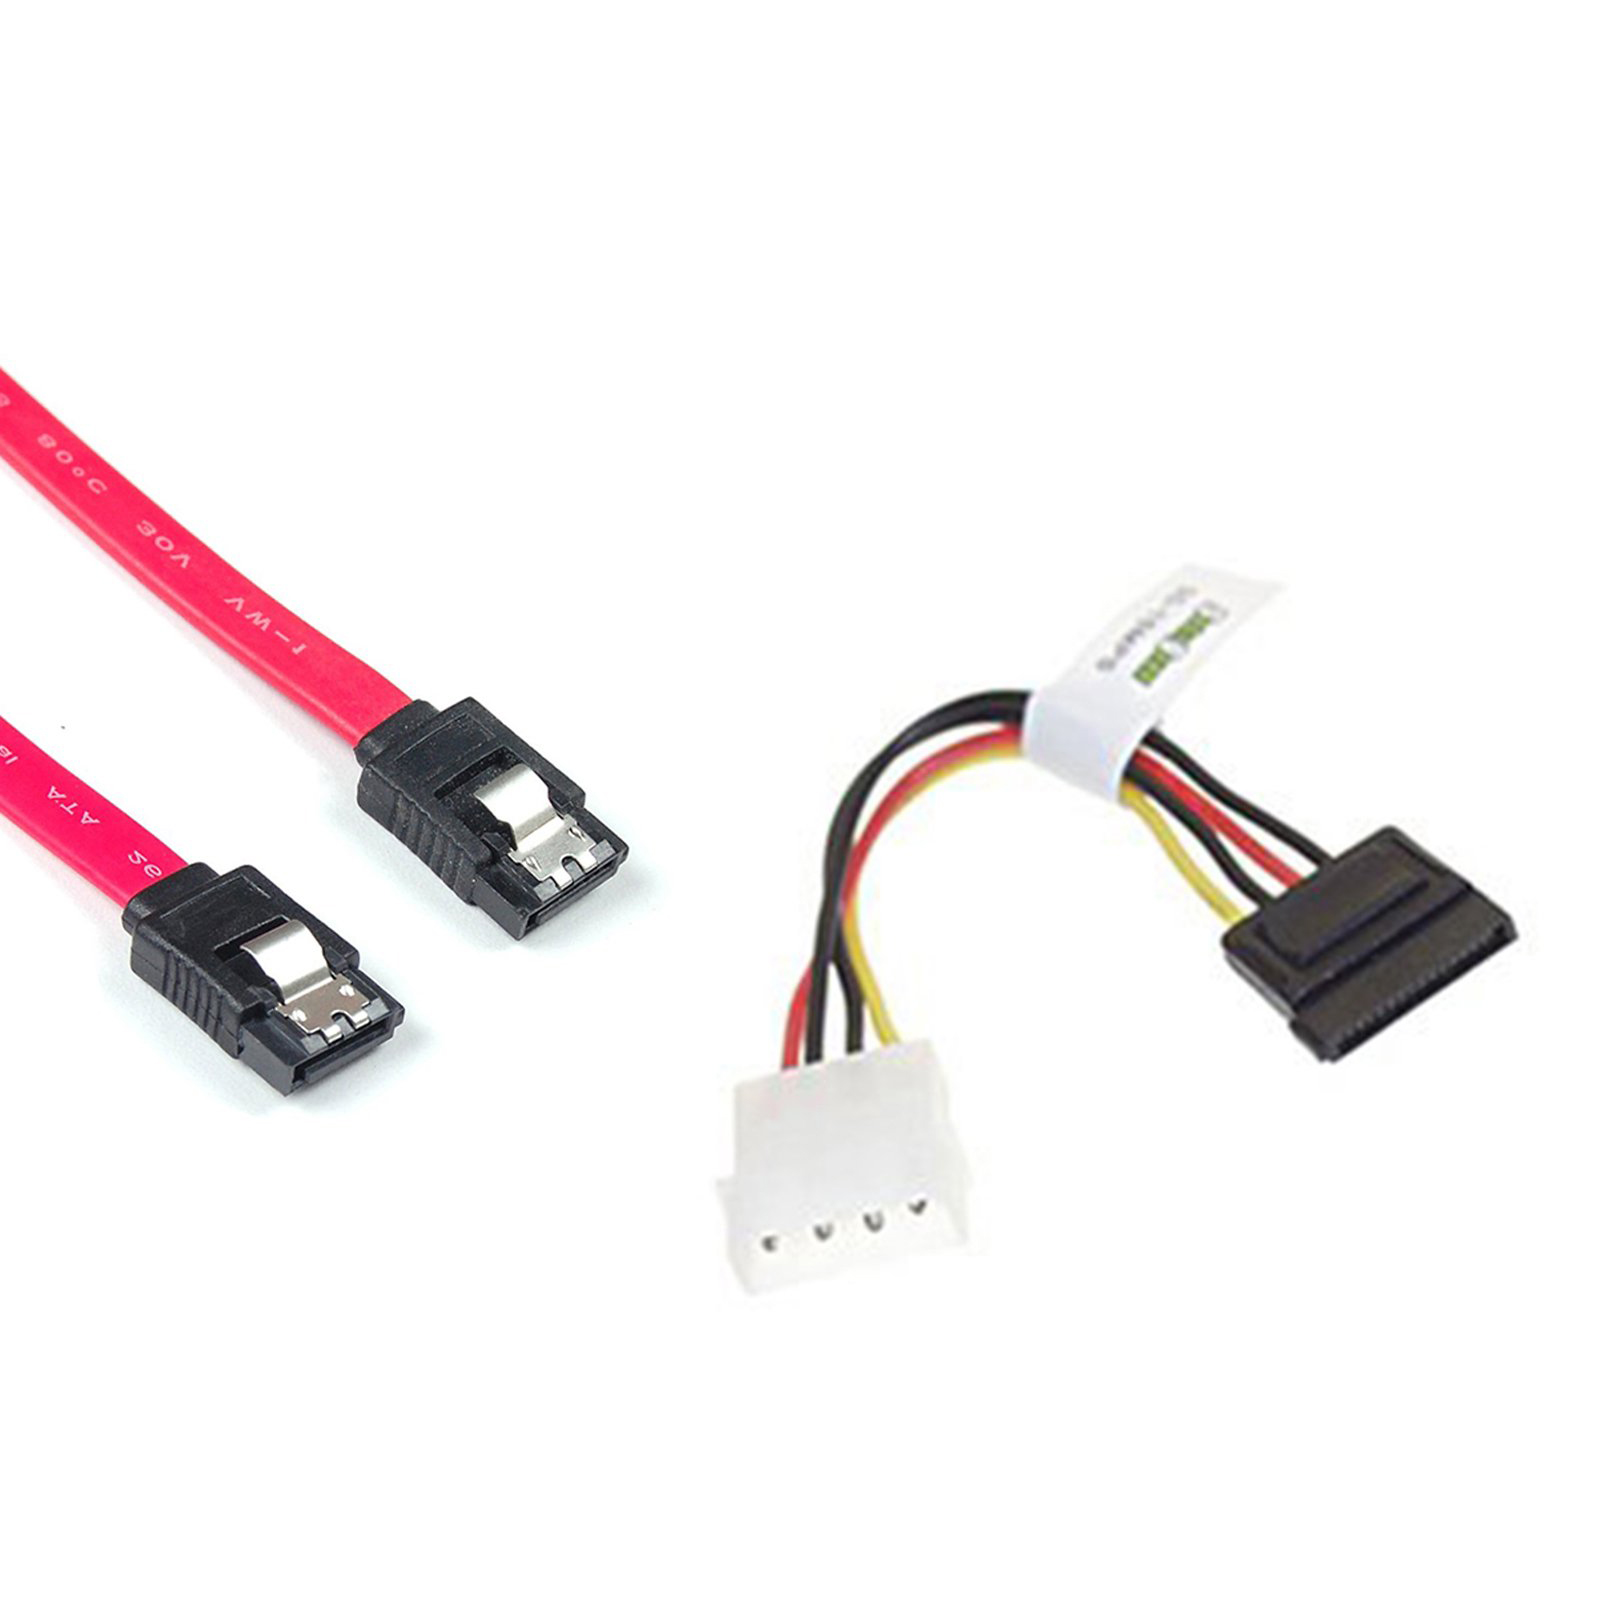 New Hot 2 Sata Power Adapter Cable And Data A211 Signal Molex One Combo To Connect Aeproductgetsubject